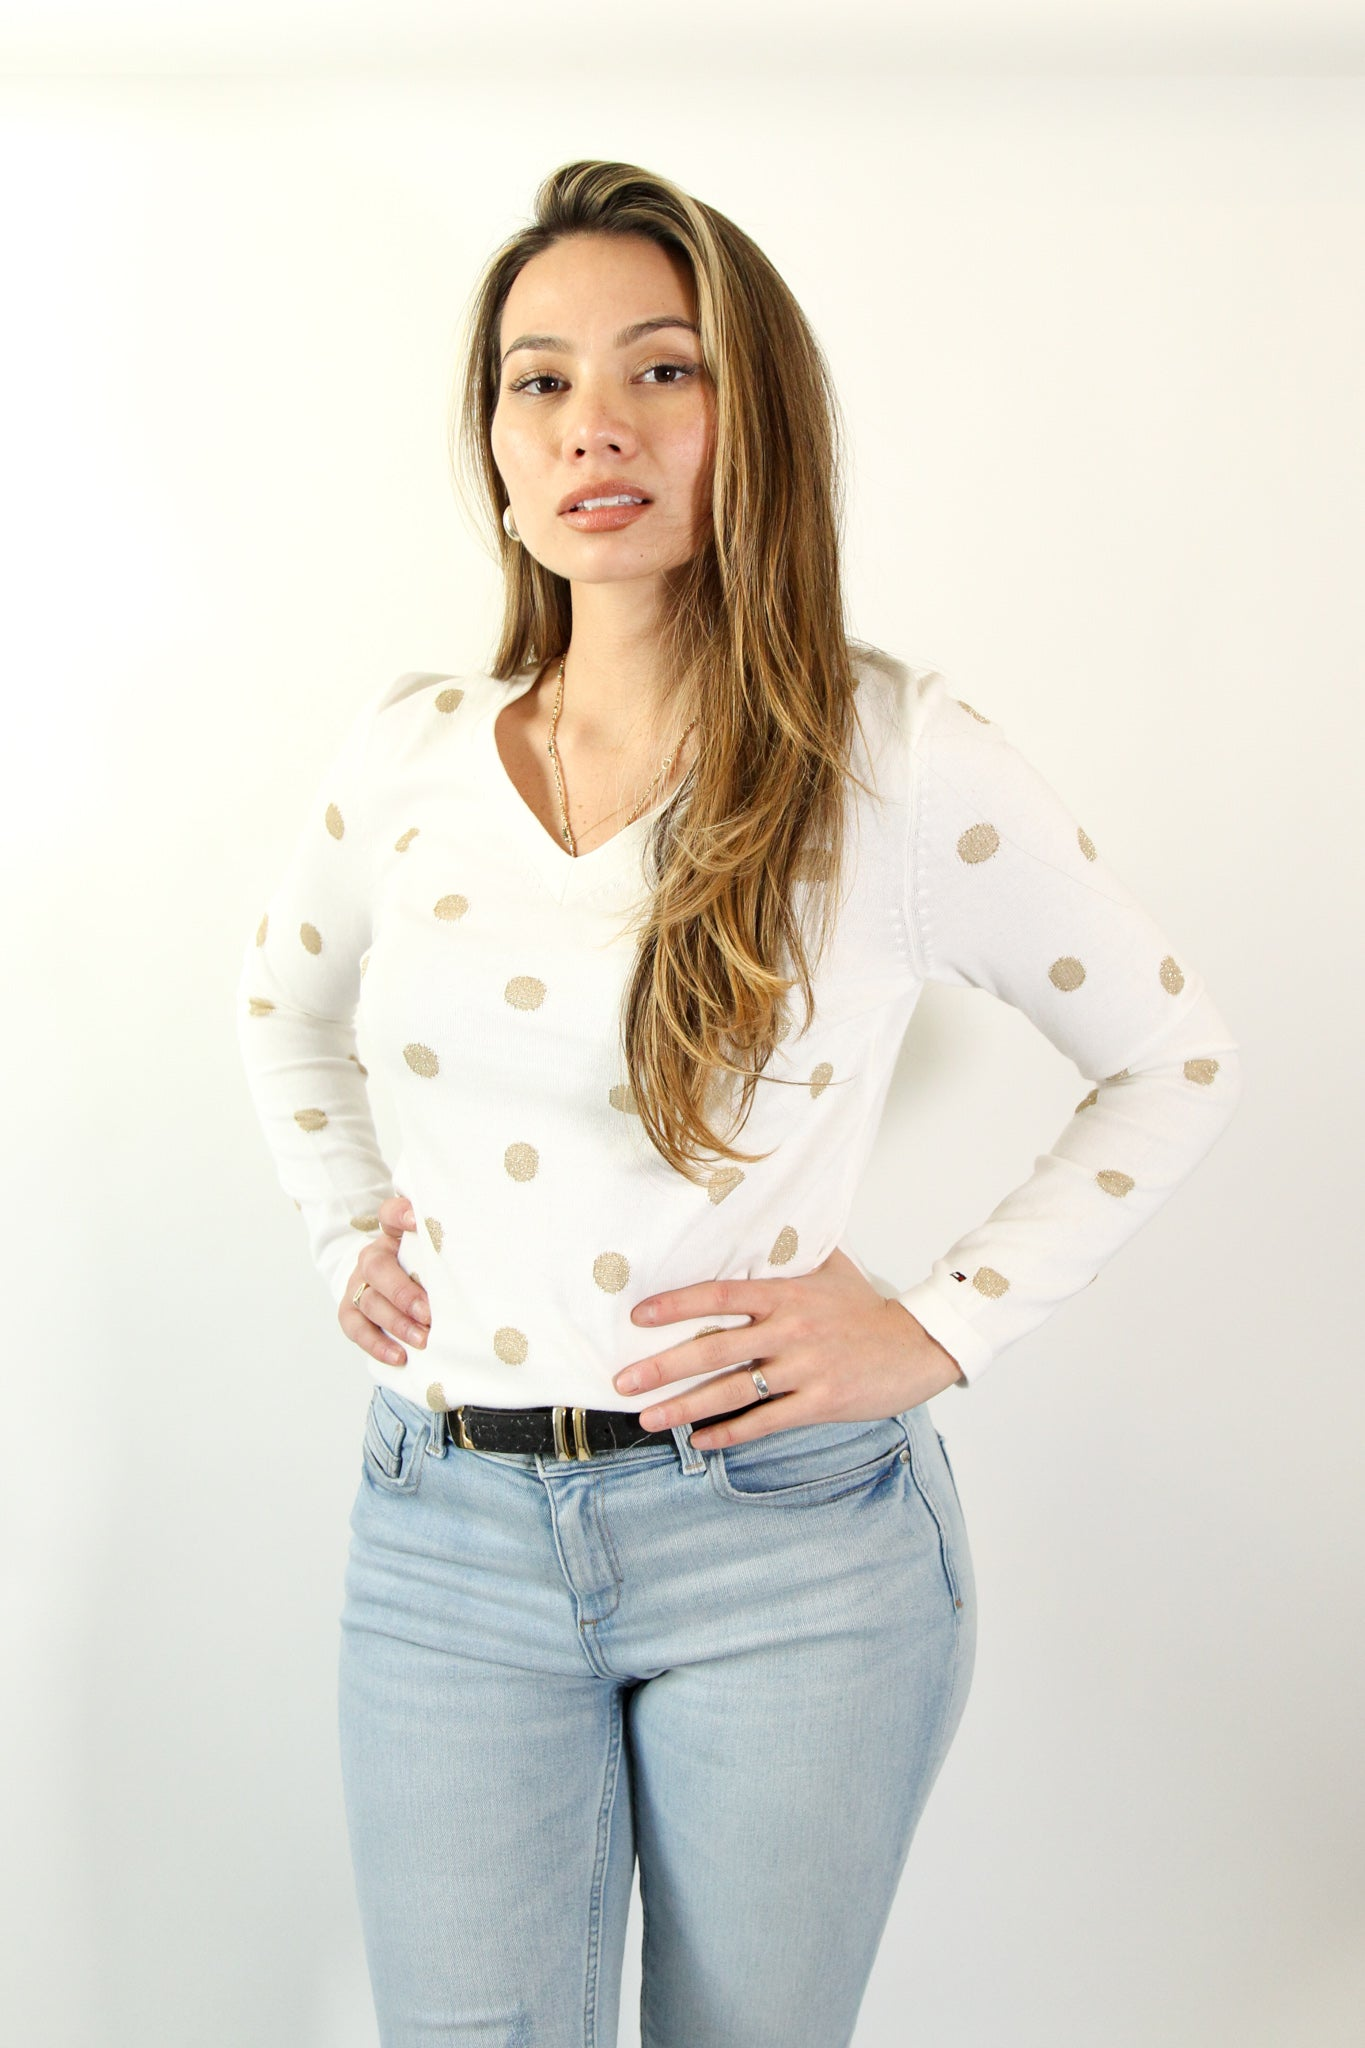 Tommy Hilfiger White Sweater with Gold Polka Dots